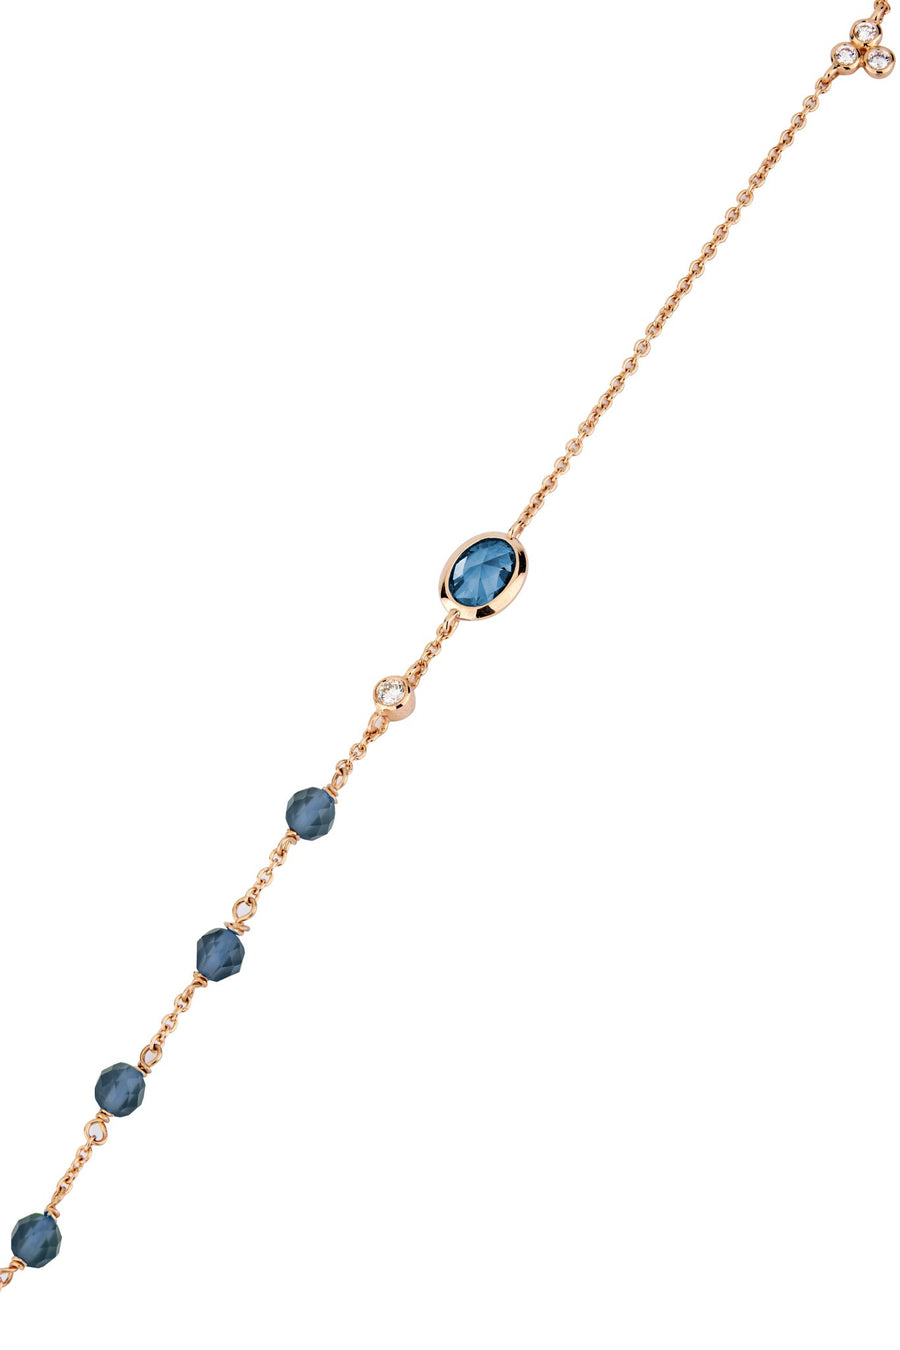 Dune Blue Ellipse Bracelet in 14K Yellow Gold